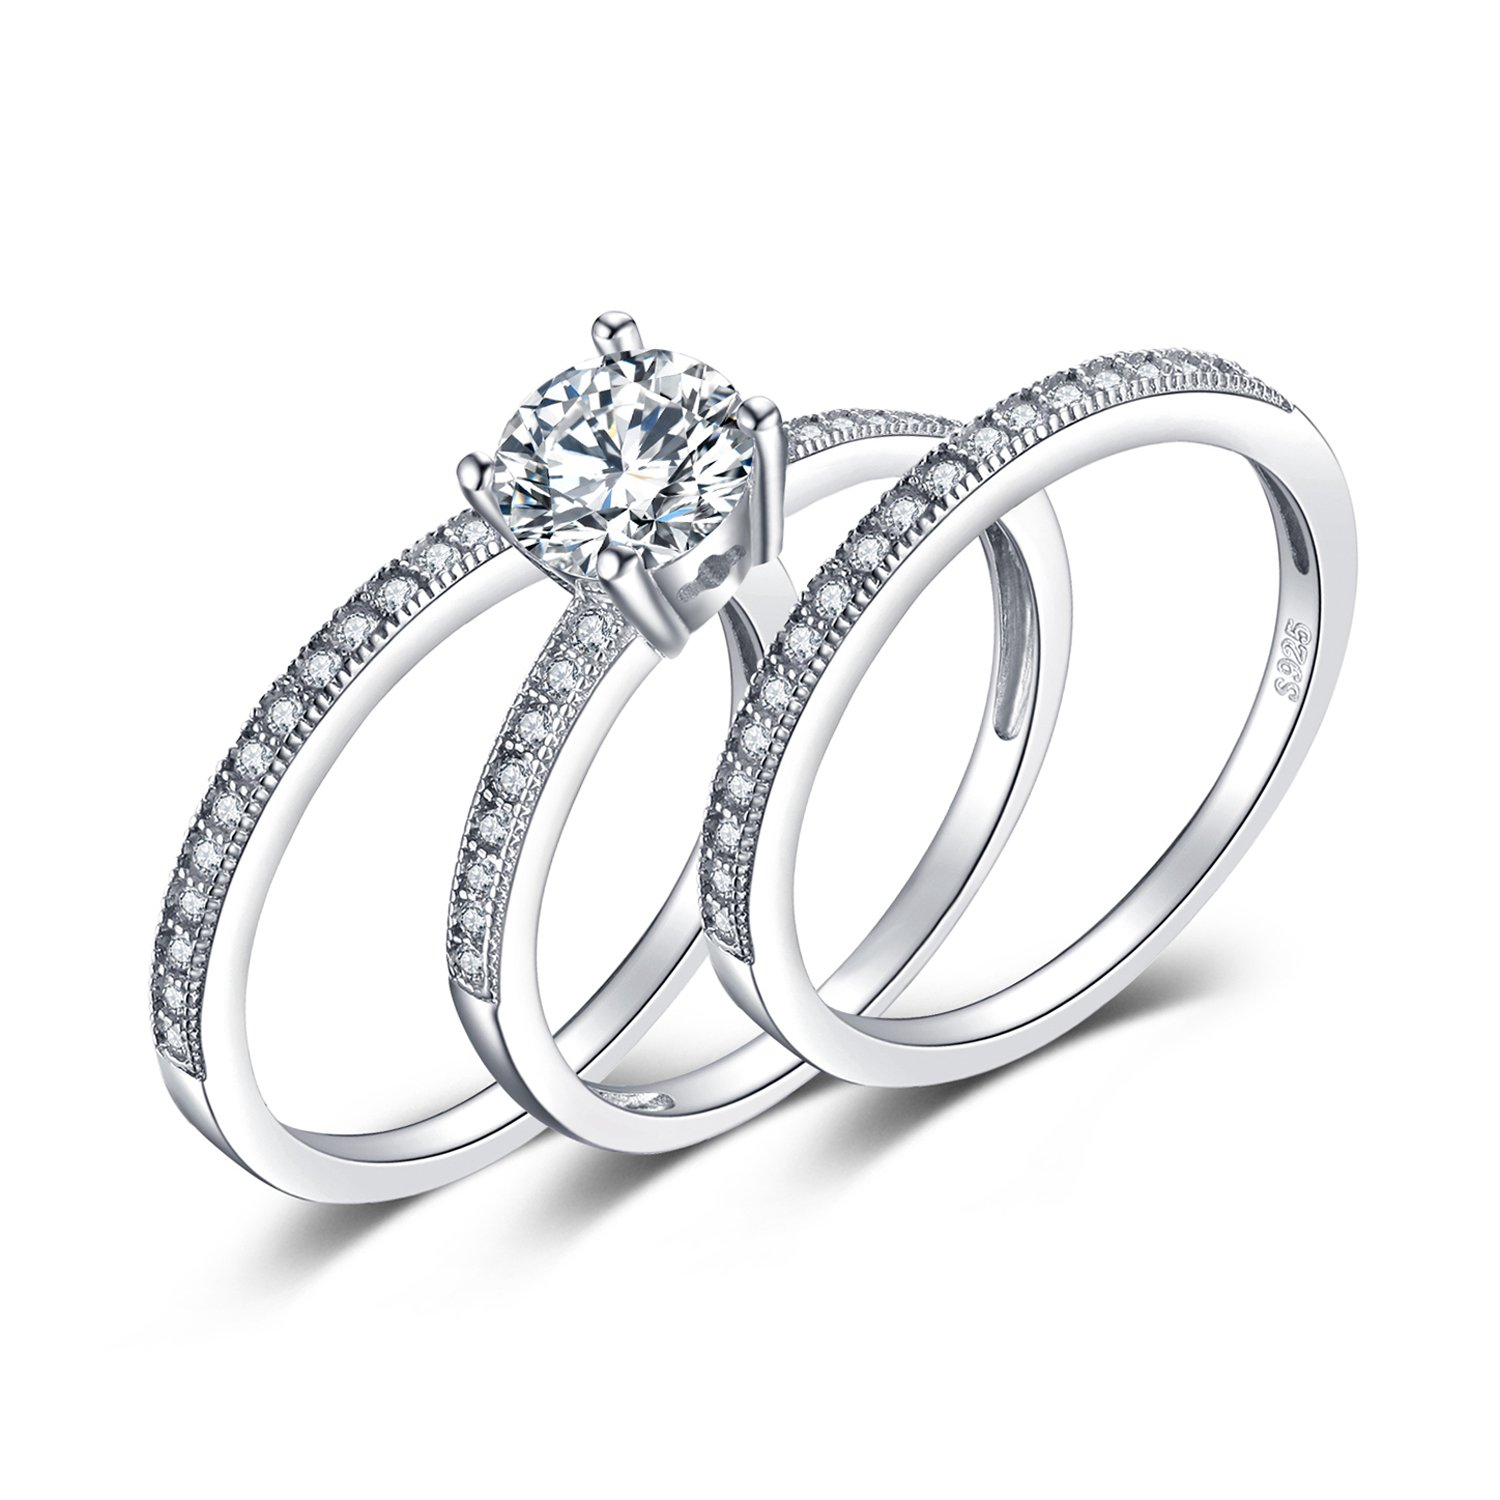 1350c0e0bd JewelryPalace 3pc Wedding Rings Halo Solitaire Engagement Rings For Women  Anniversary Promise Ring Bridal Sets 925 Sterling Silver 1.5ct Cubic  Zirconia